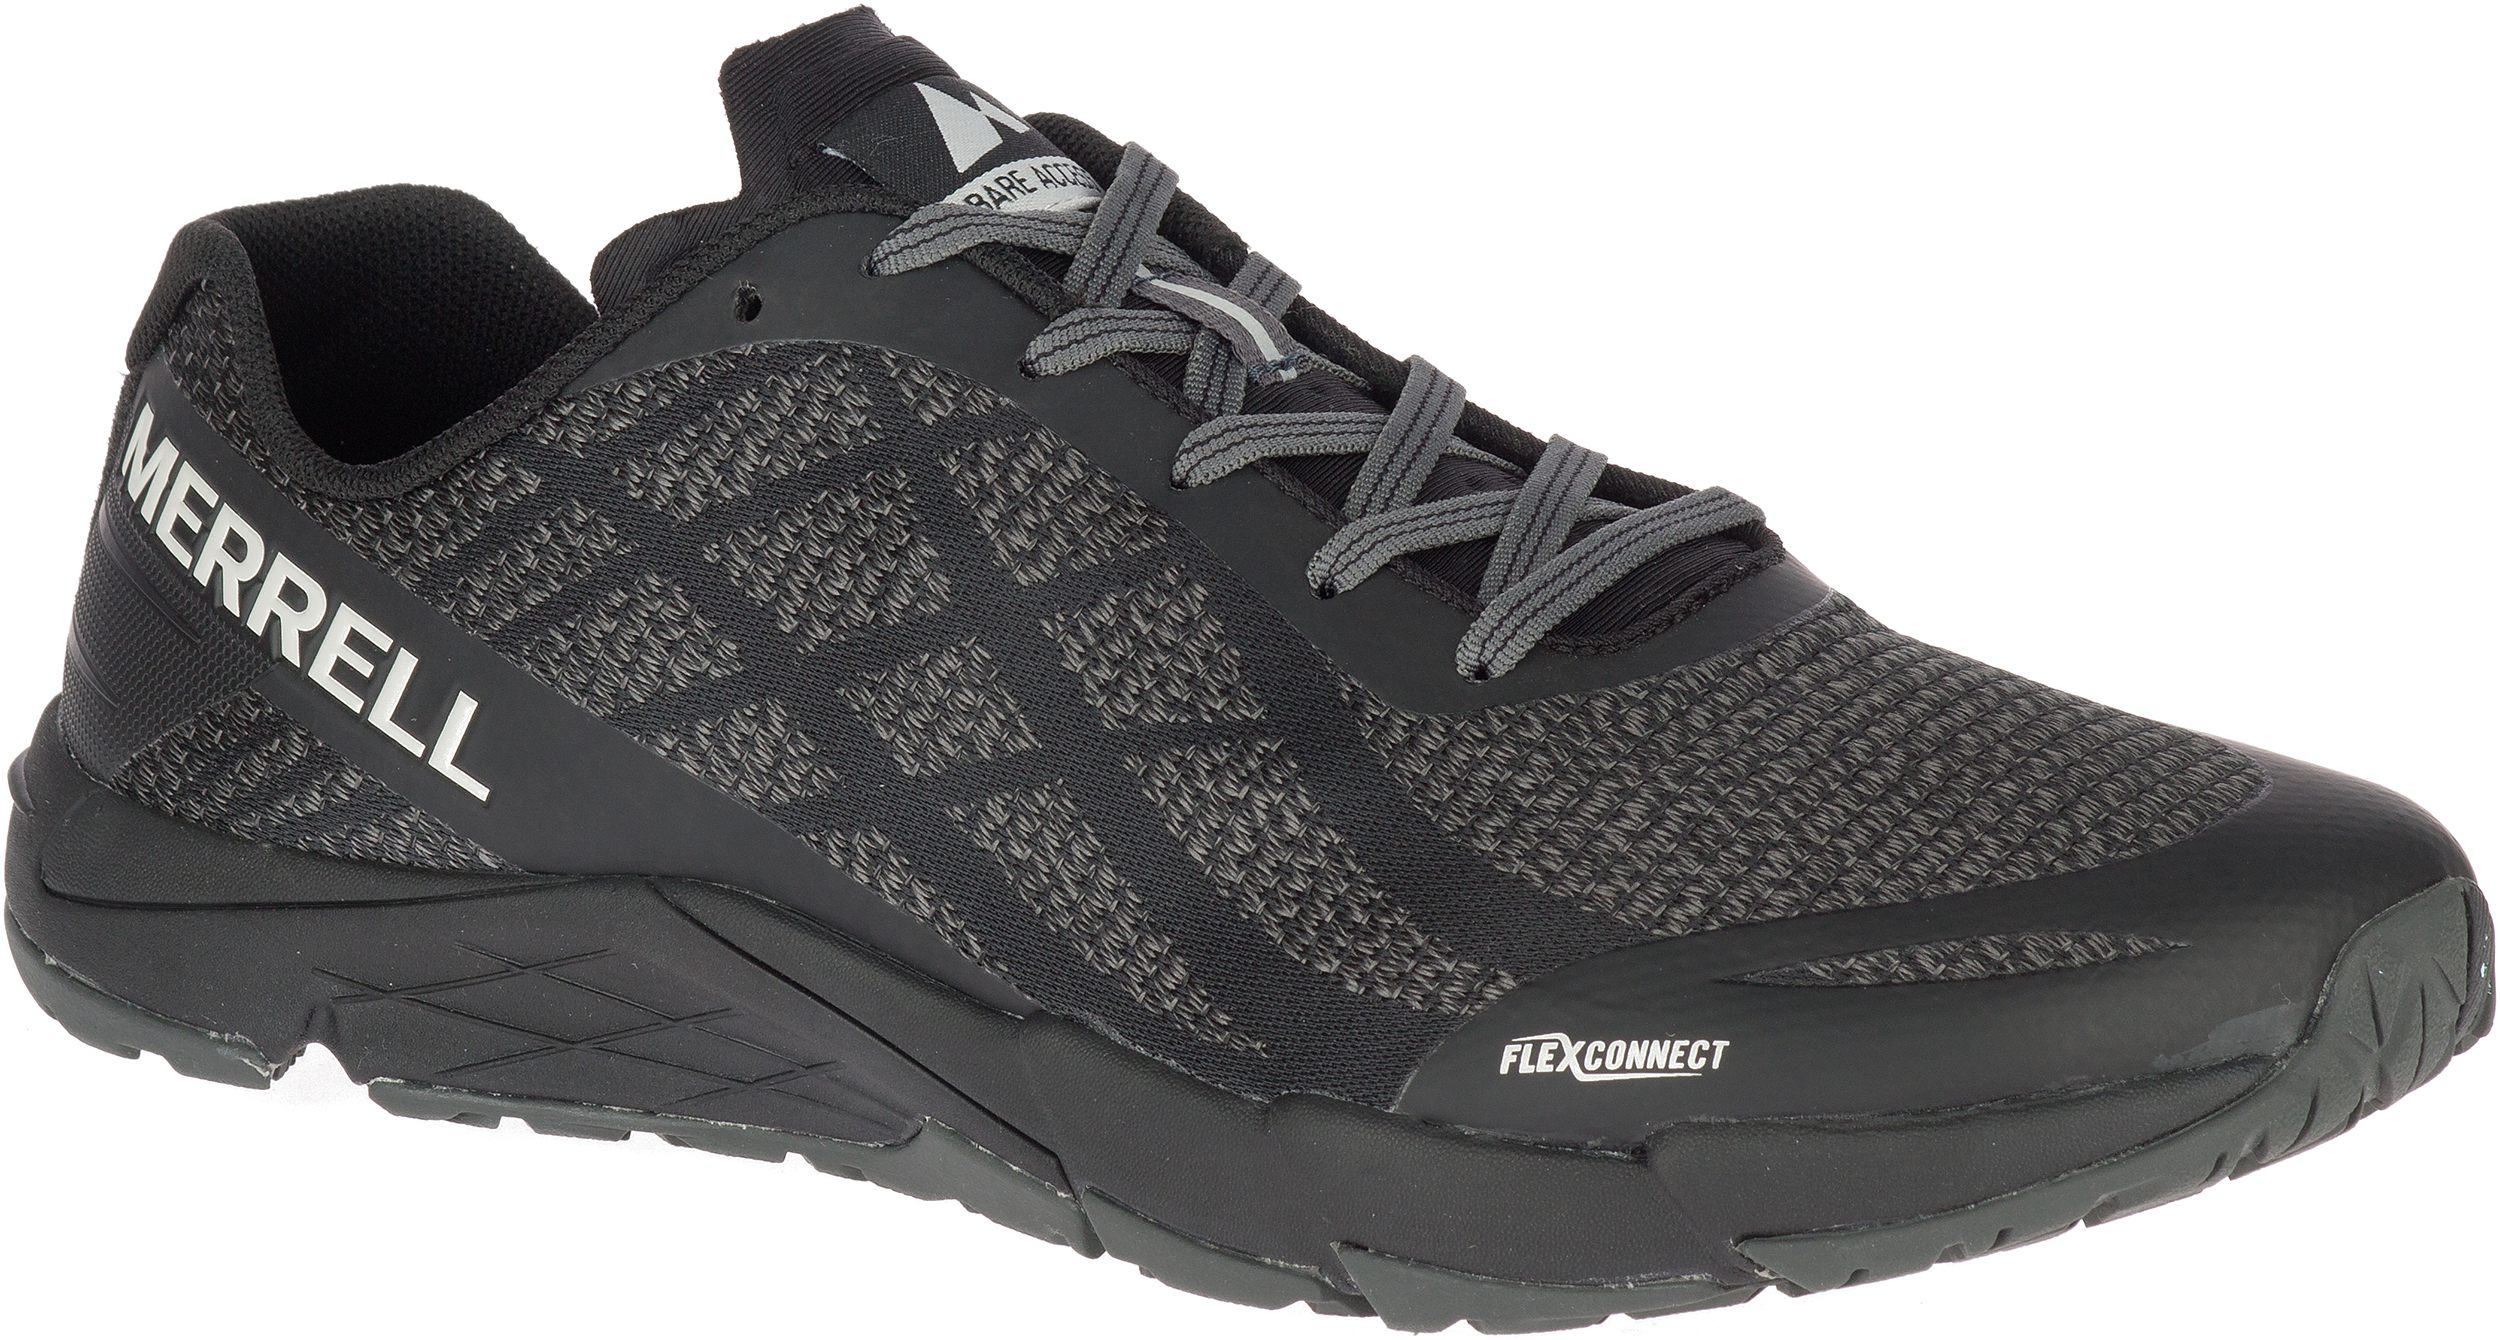 3504b86b29f68 Merrell Bare Access Flex Shield Trail Running Shoes - Men's